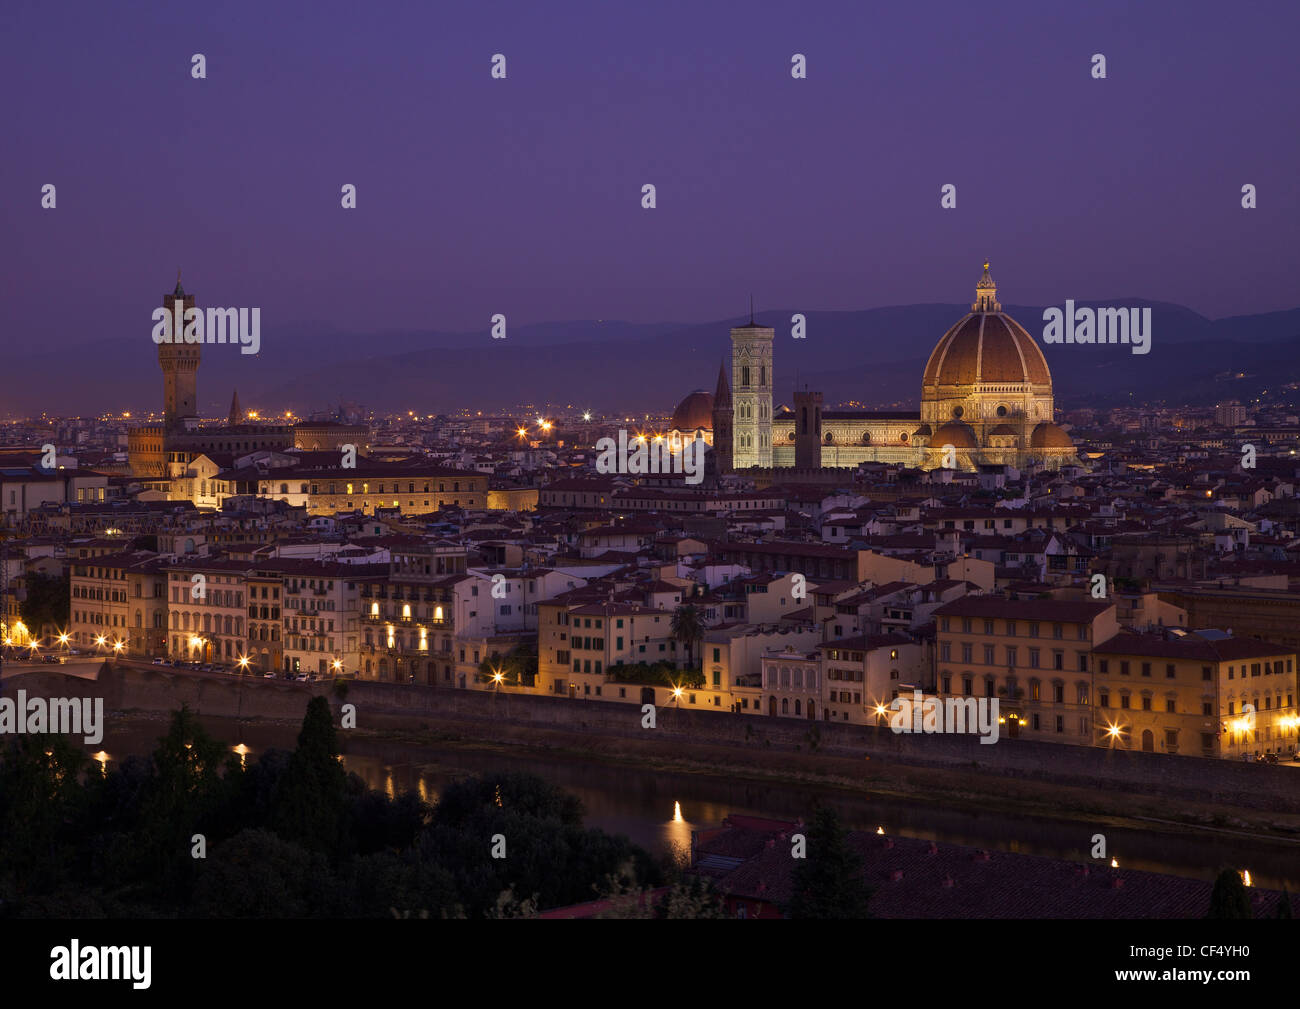 View of the Duomo and Palazzo Vecchio at dawn from Piazzale Michelangelo, Florence, Tuscany, Italy, Europe - Stock Image